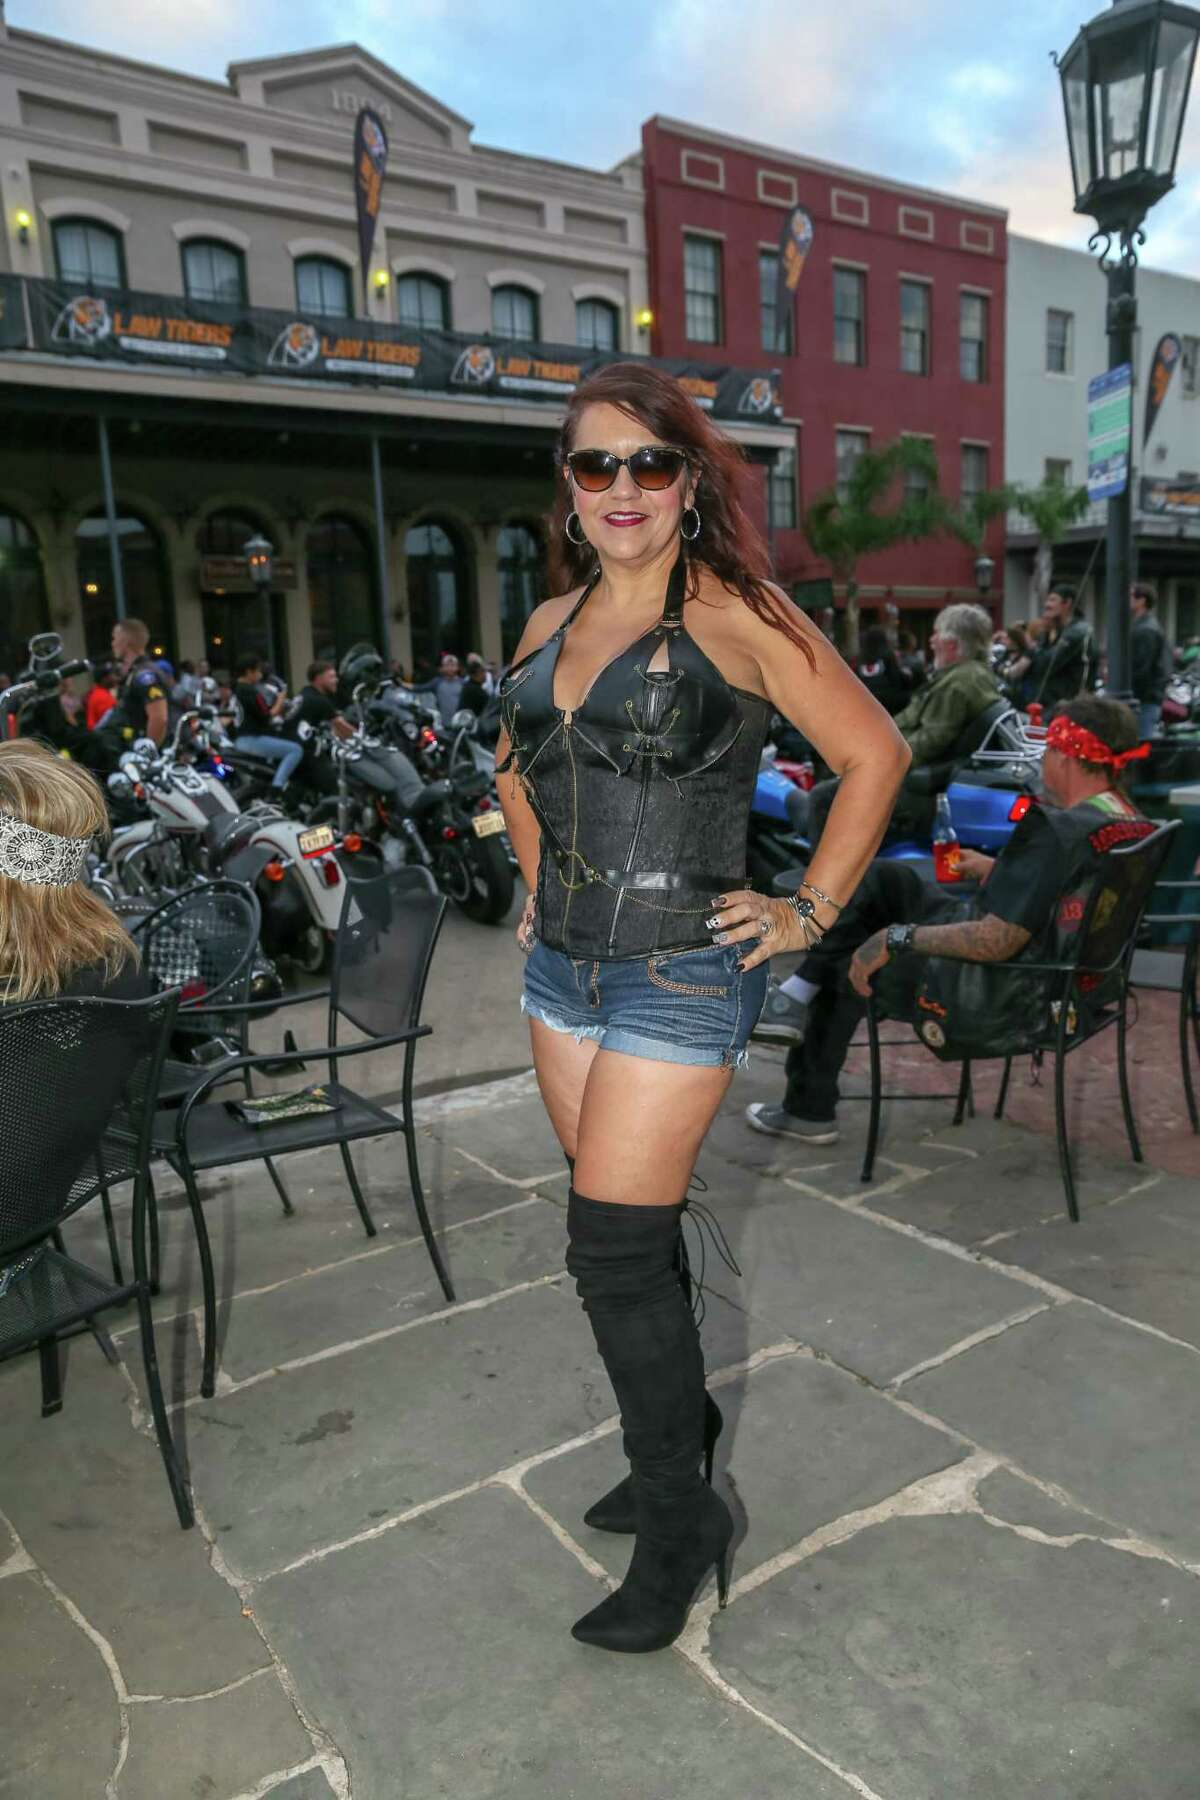 November 3, 2018: Bikers and seensters enjoy the festive atmosphere at the Lone Star Rally in Galveston, Texas.